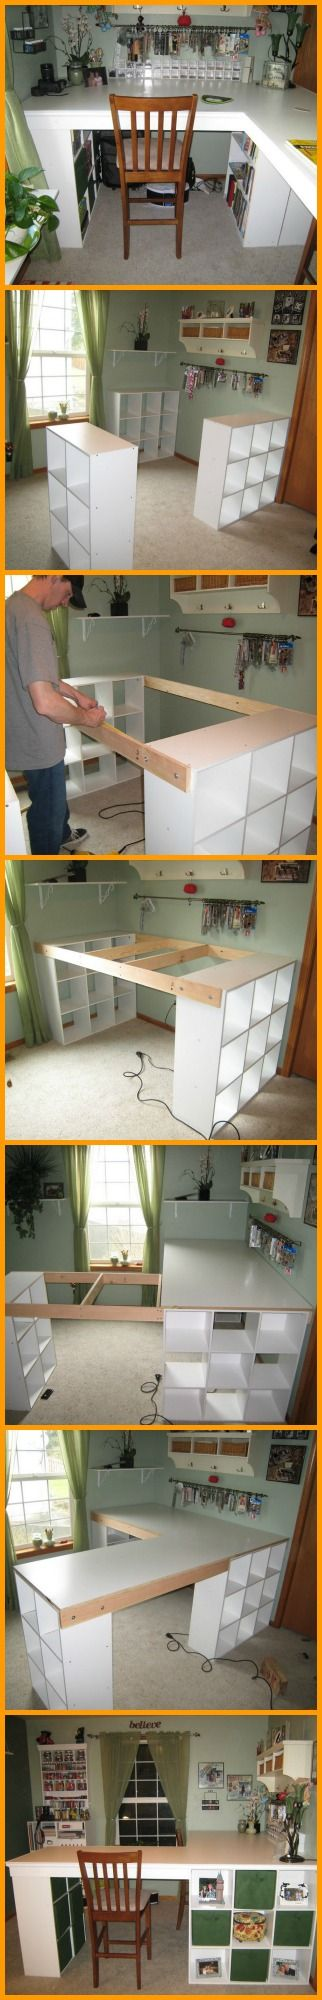 Craft projects have a tendency to take up a lot of space. This custom craft table could be the solution you're looking for. http://theownerbuildernetwork.co/bm4h